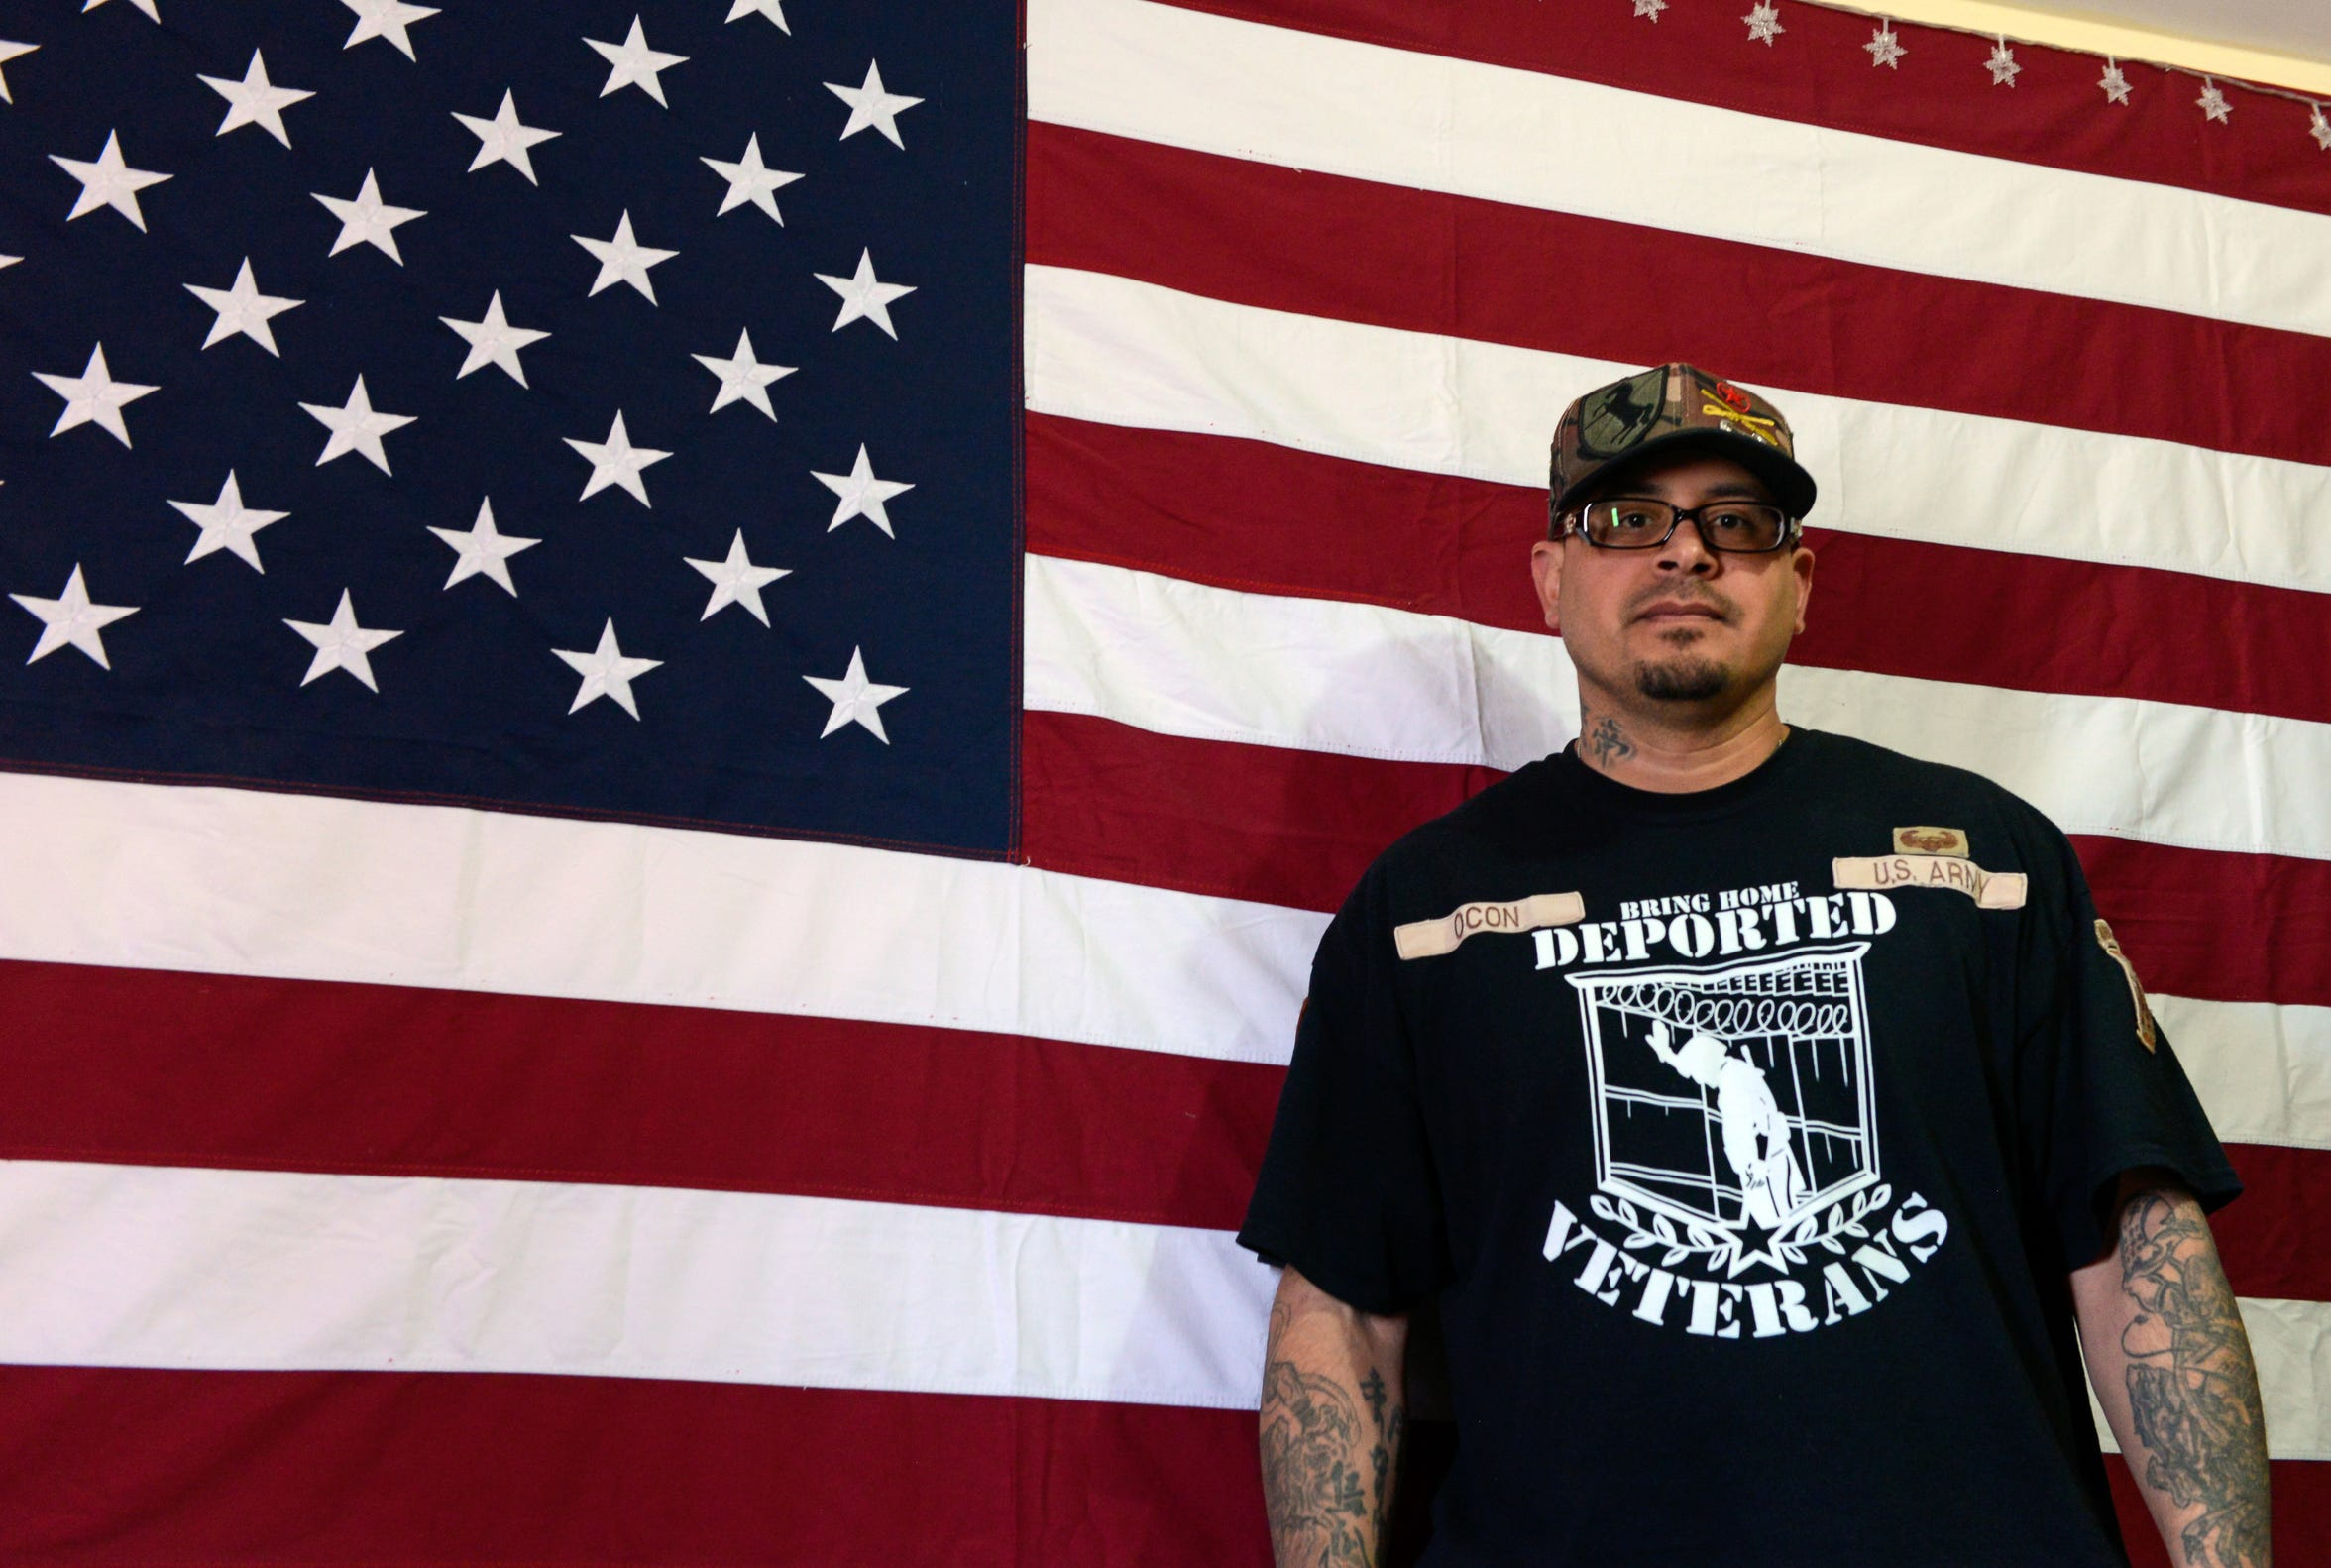 Ivan Ocon, who grew up in Las Cruces but was deported to Mexico for breaking the law, stands in front of a U.S. flag at his home in Juárez.